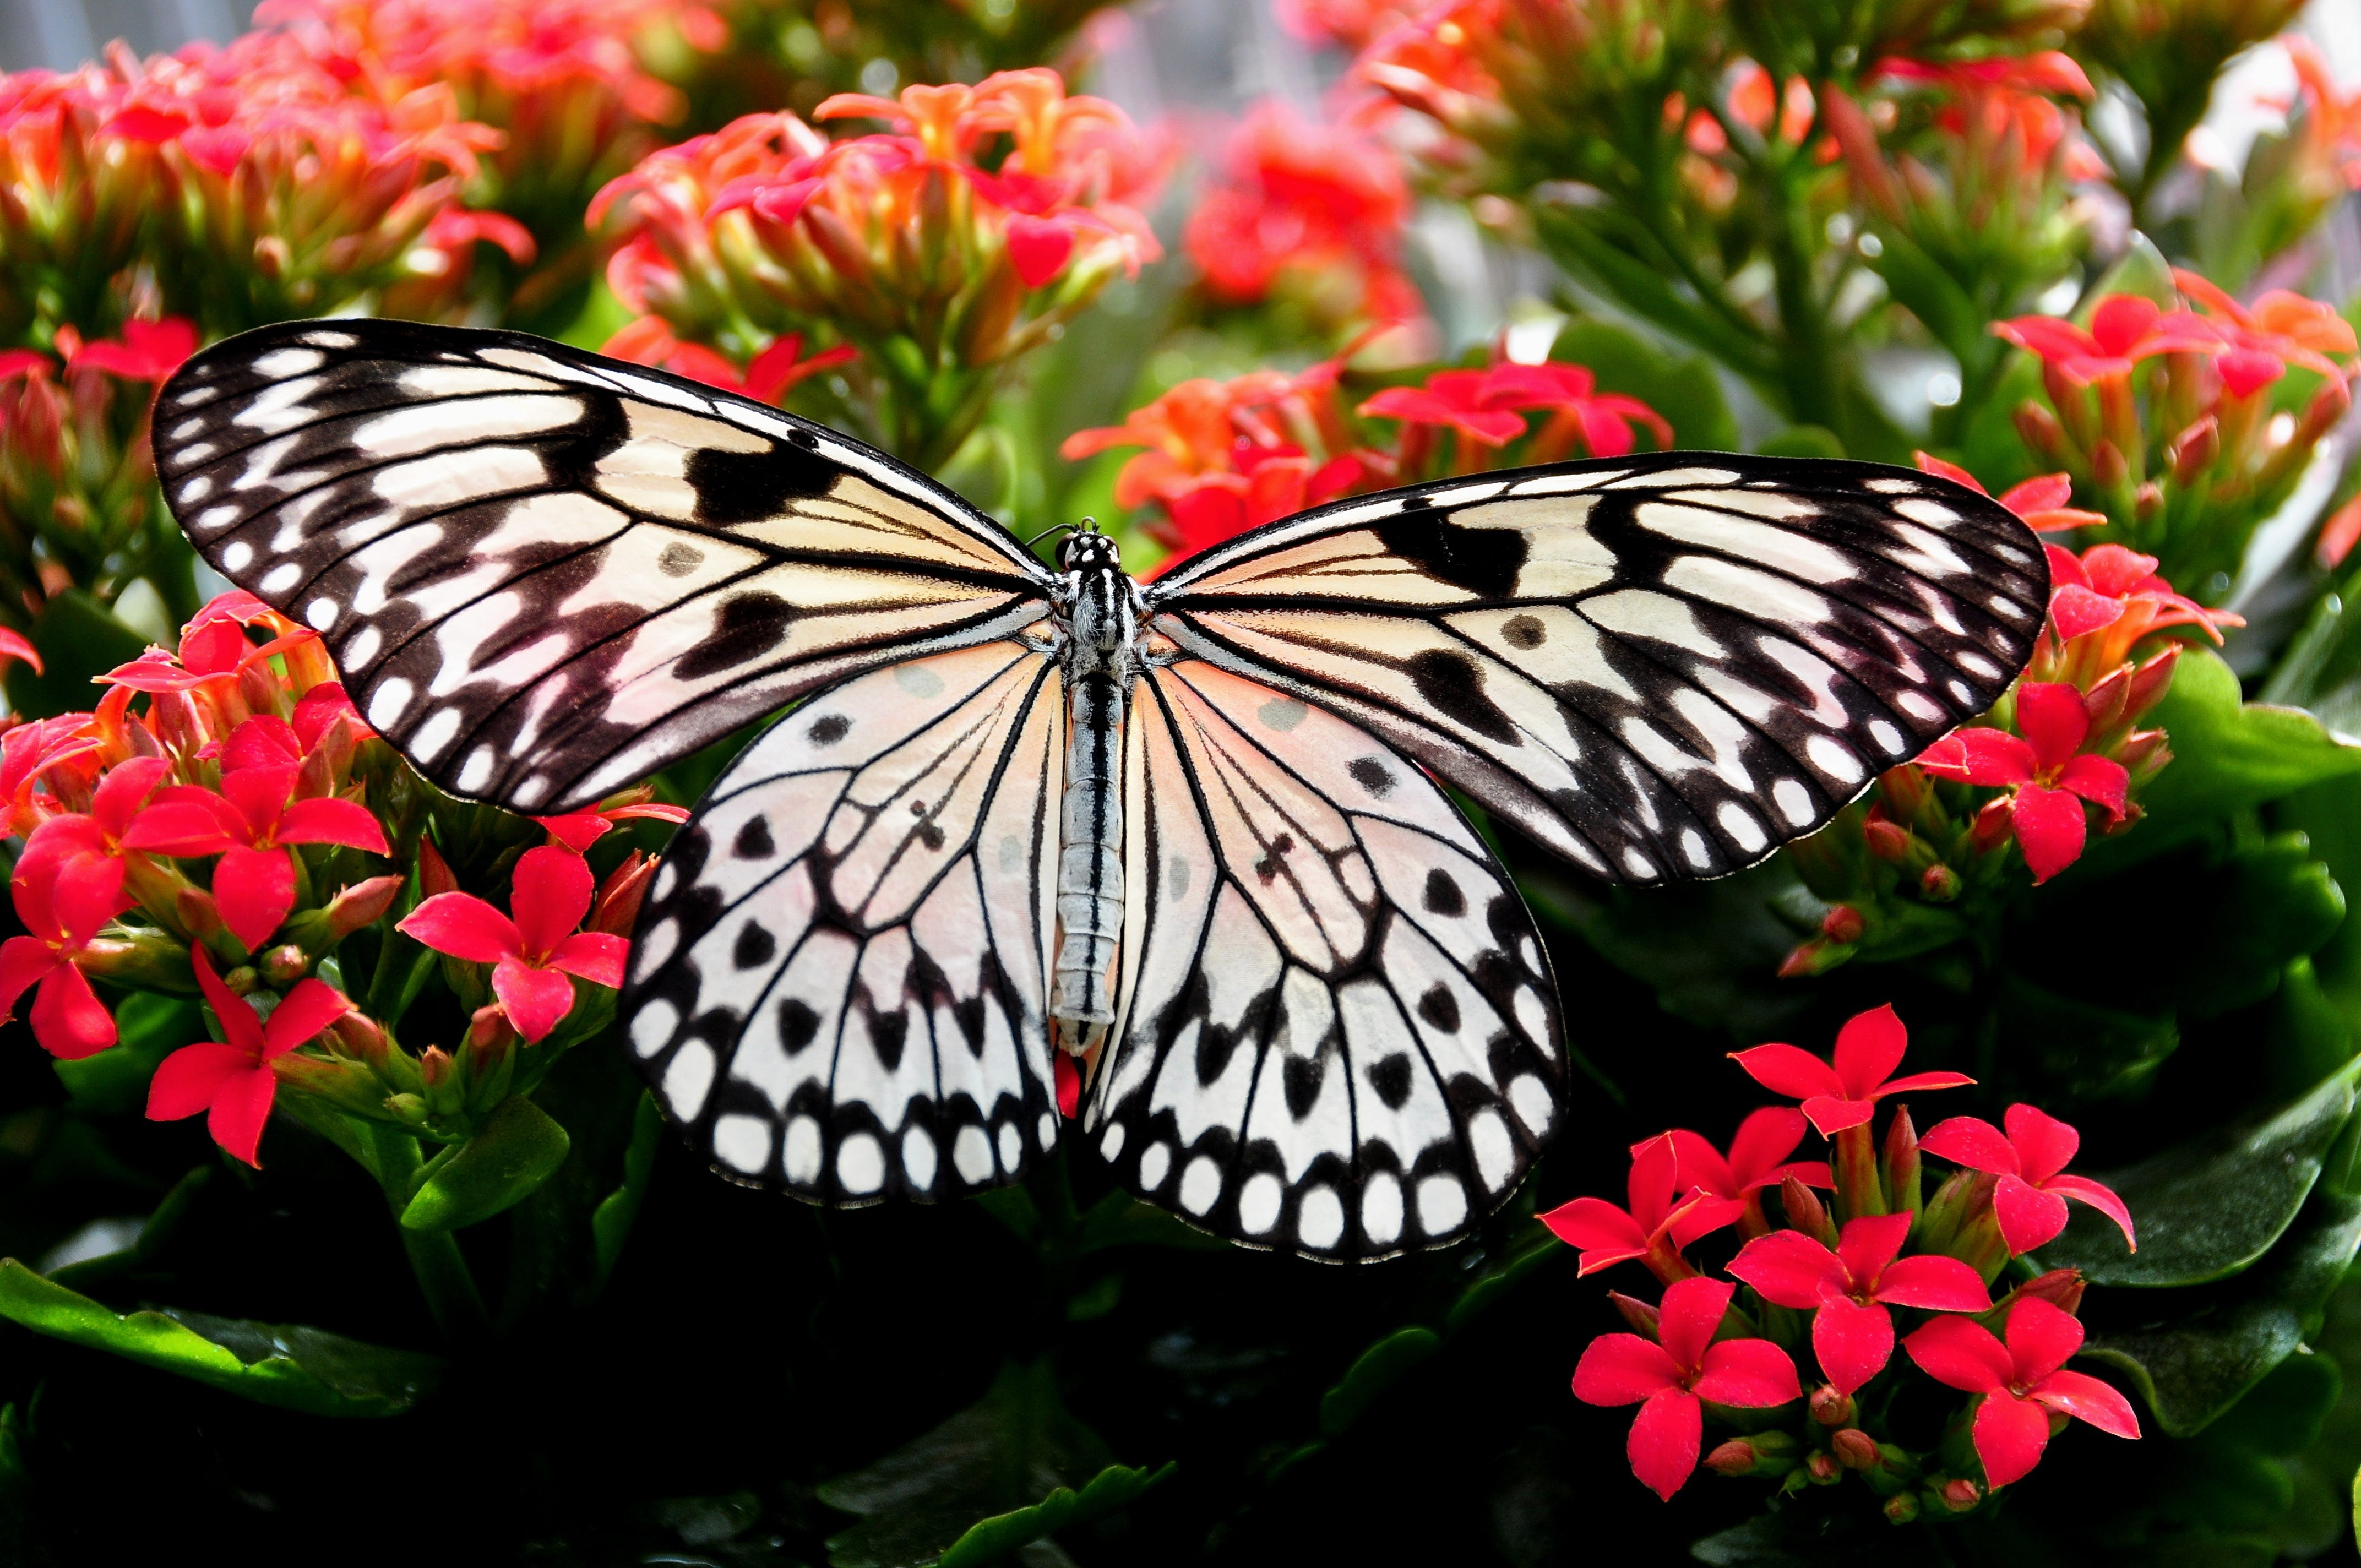 Paper Kite Butterfly Perching on Red Flower in Close-up Photography